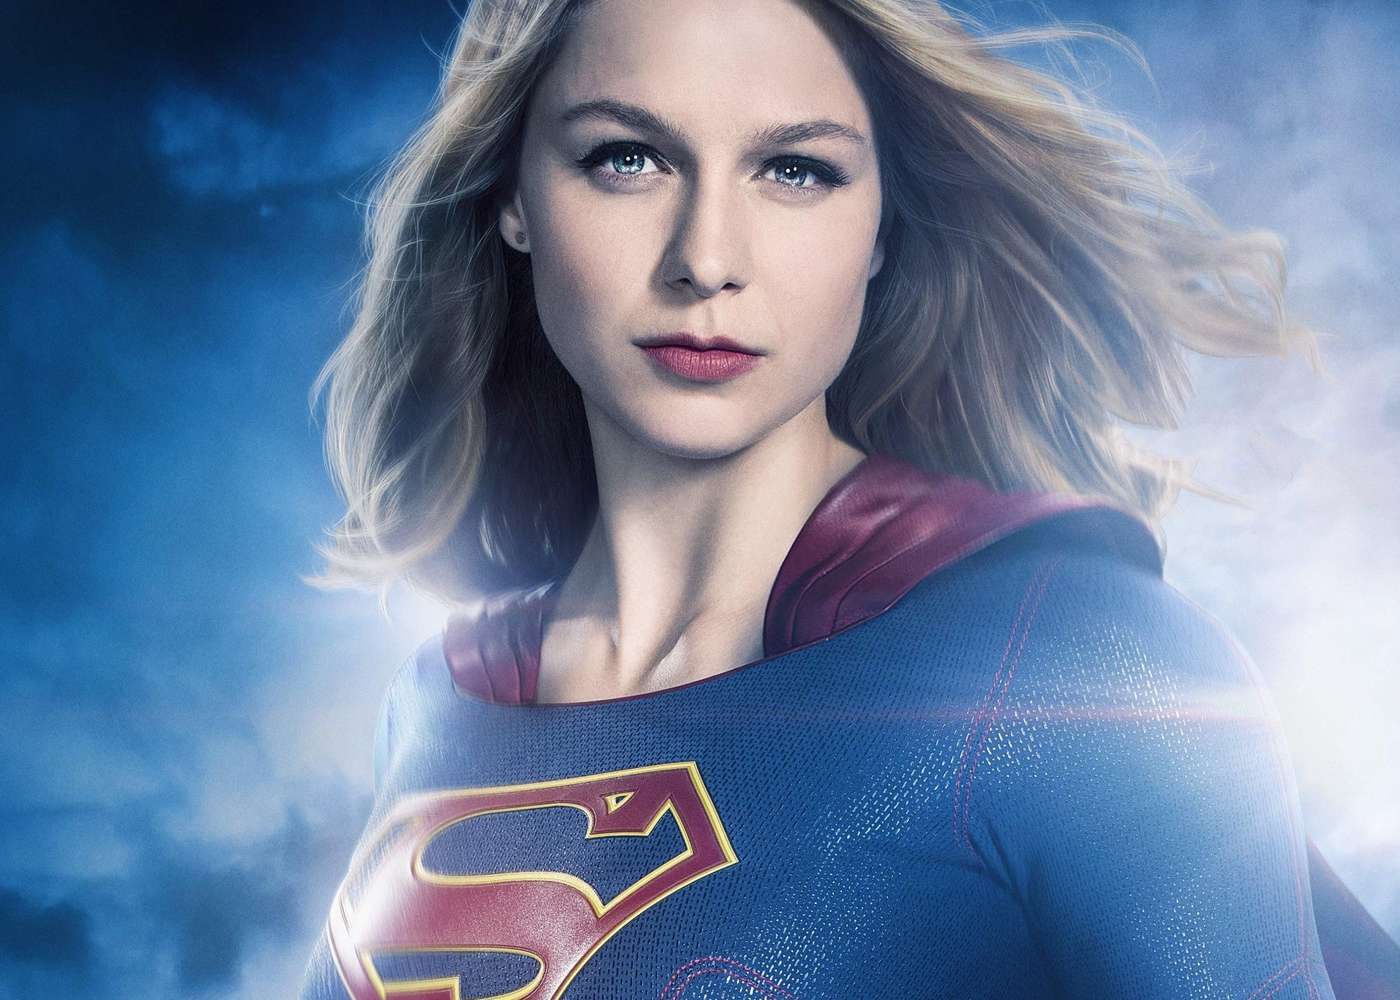 Supergirl's Season 3 Episode 1 Synopsis Releases Ahead of SDCC